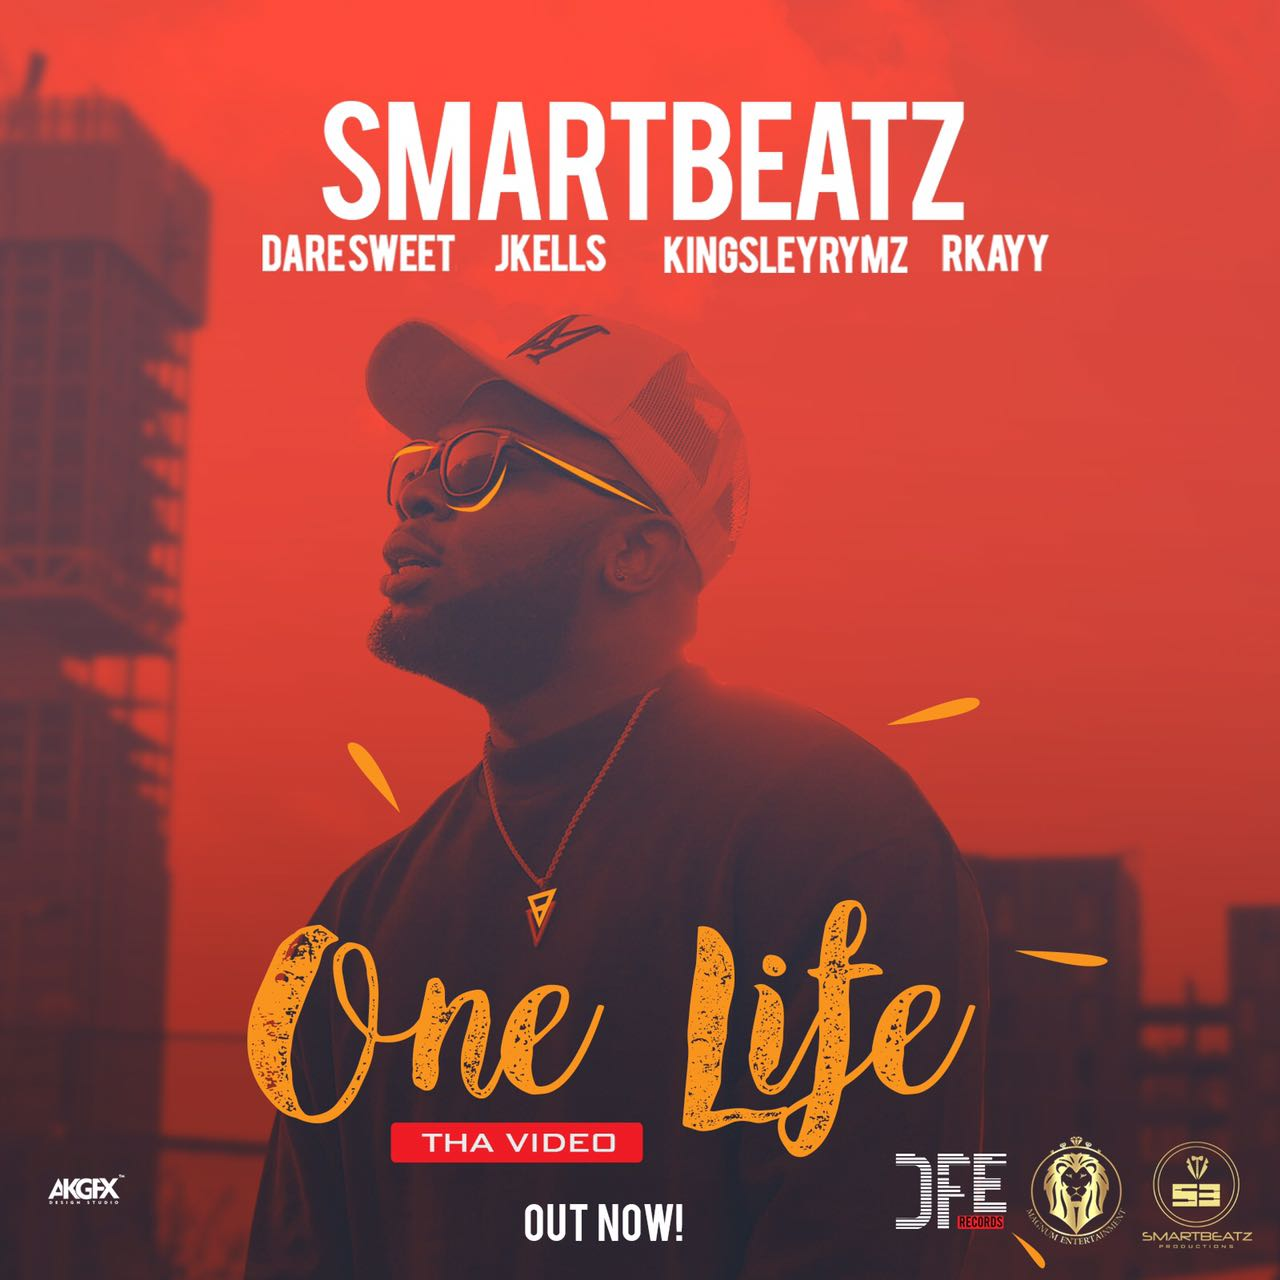 VIDEO: Smartbeatz – One Life ft. Dare Sweet X Jkells X Kingsley Rymz X Rkayy